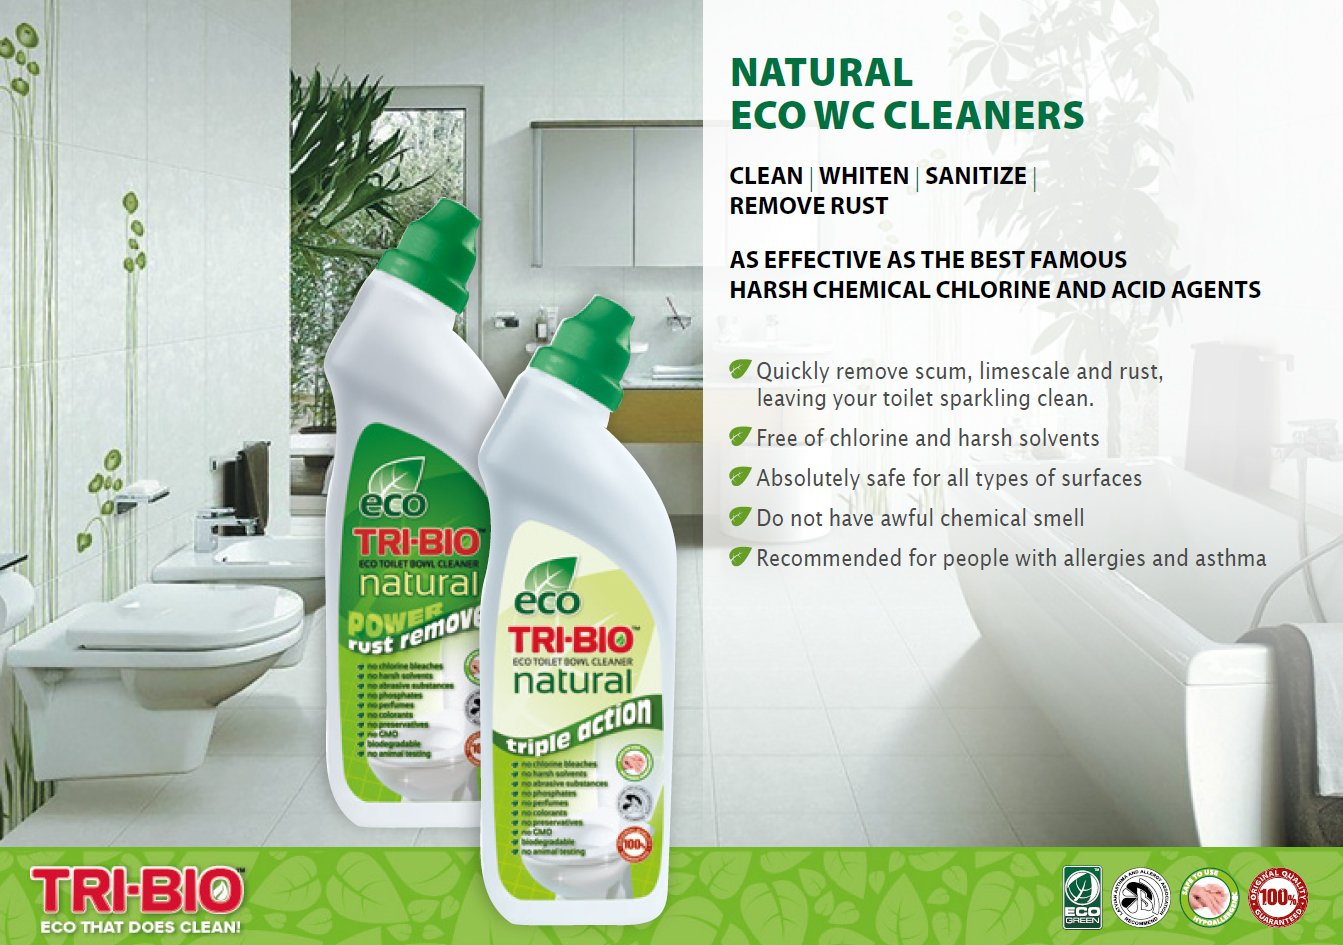 Tri-Bio Eco Natural Triple Action Toilet Bowl Cleaner 710ml Non-Toxic and Safe